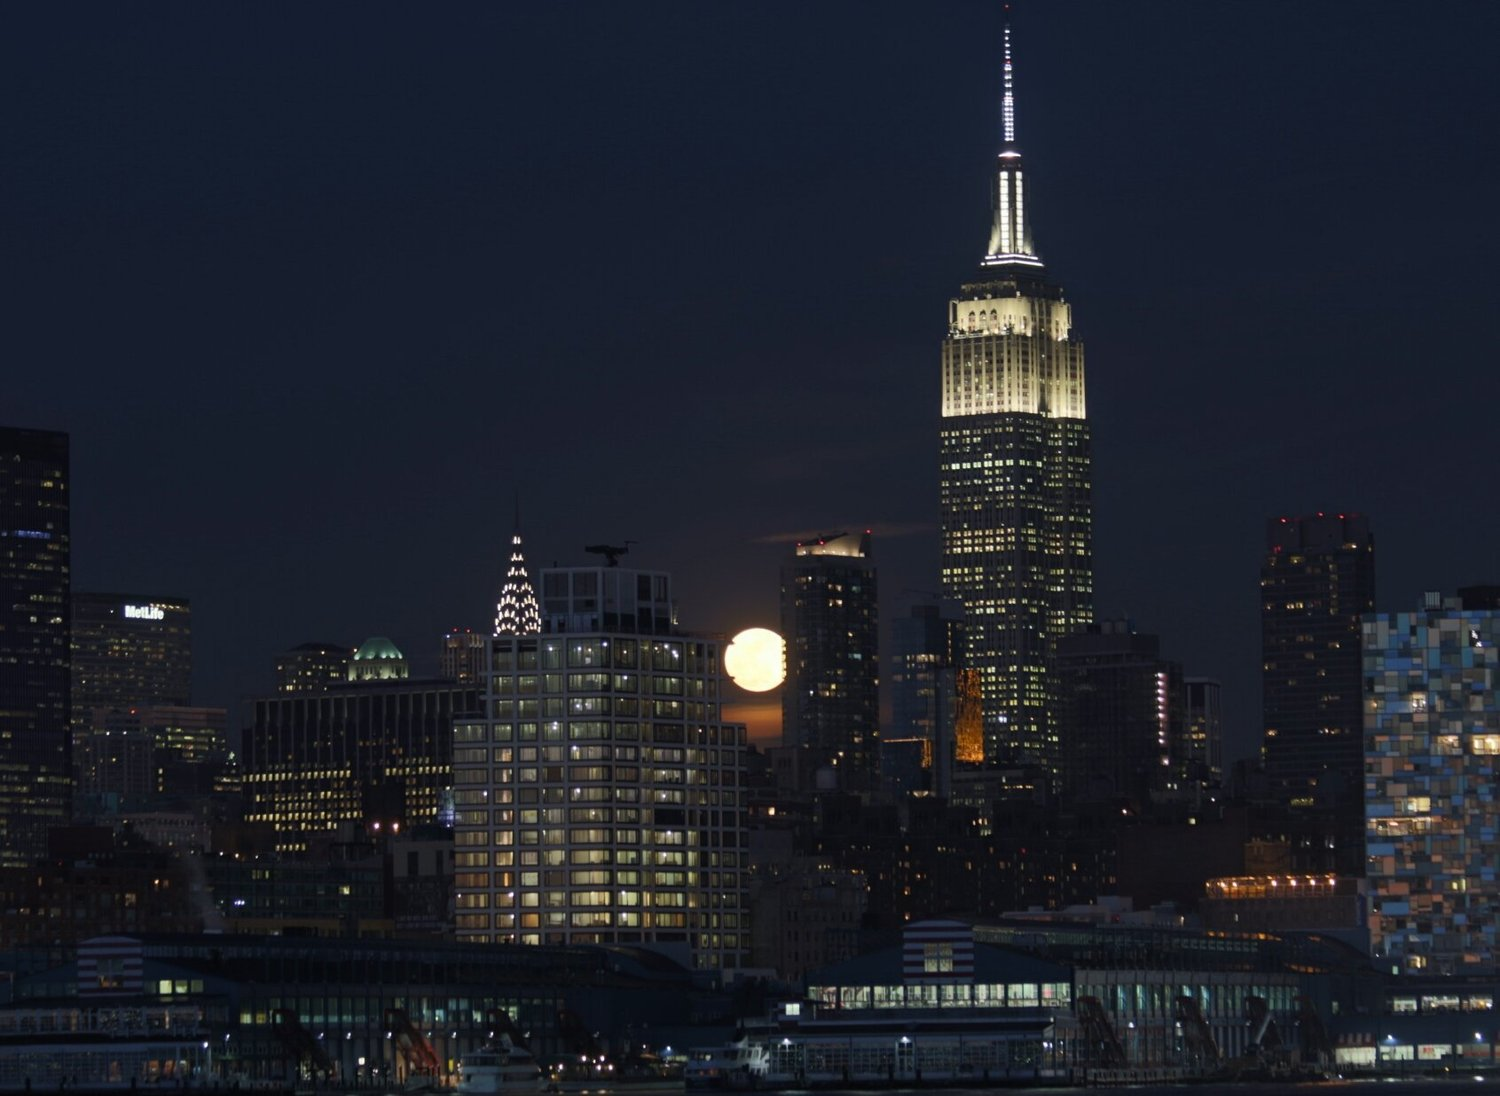 Tonight's Full Snow Moon rising above the skyline #NYC @EverythingNYC https://t.co/qomT54WrbW